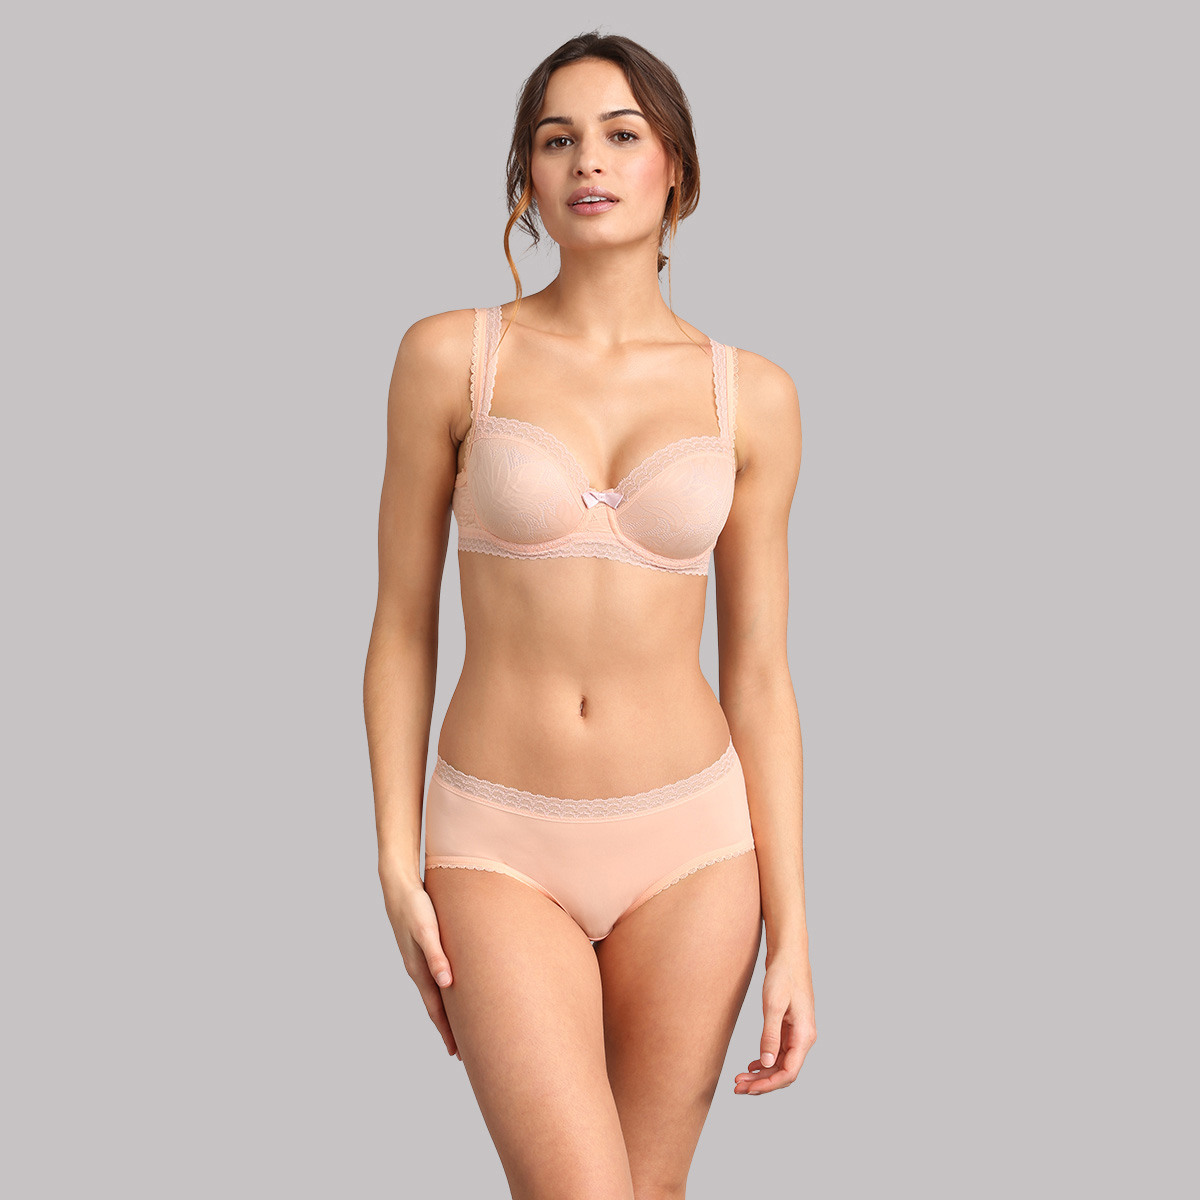 Midi knickers in sea salt pink - Invisible Elegance, , PLAYTEX